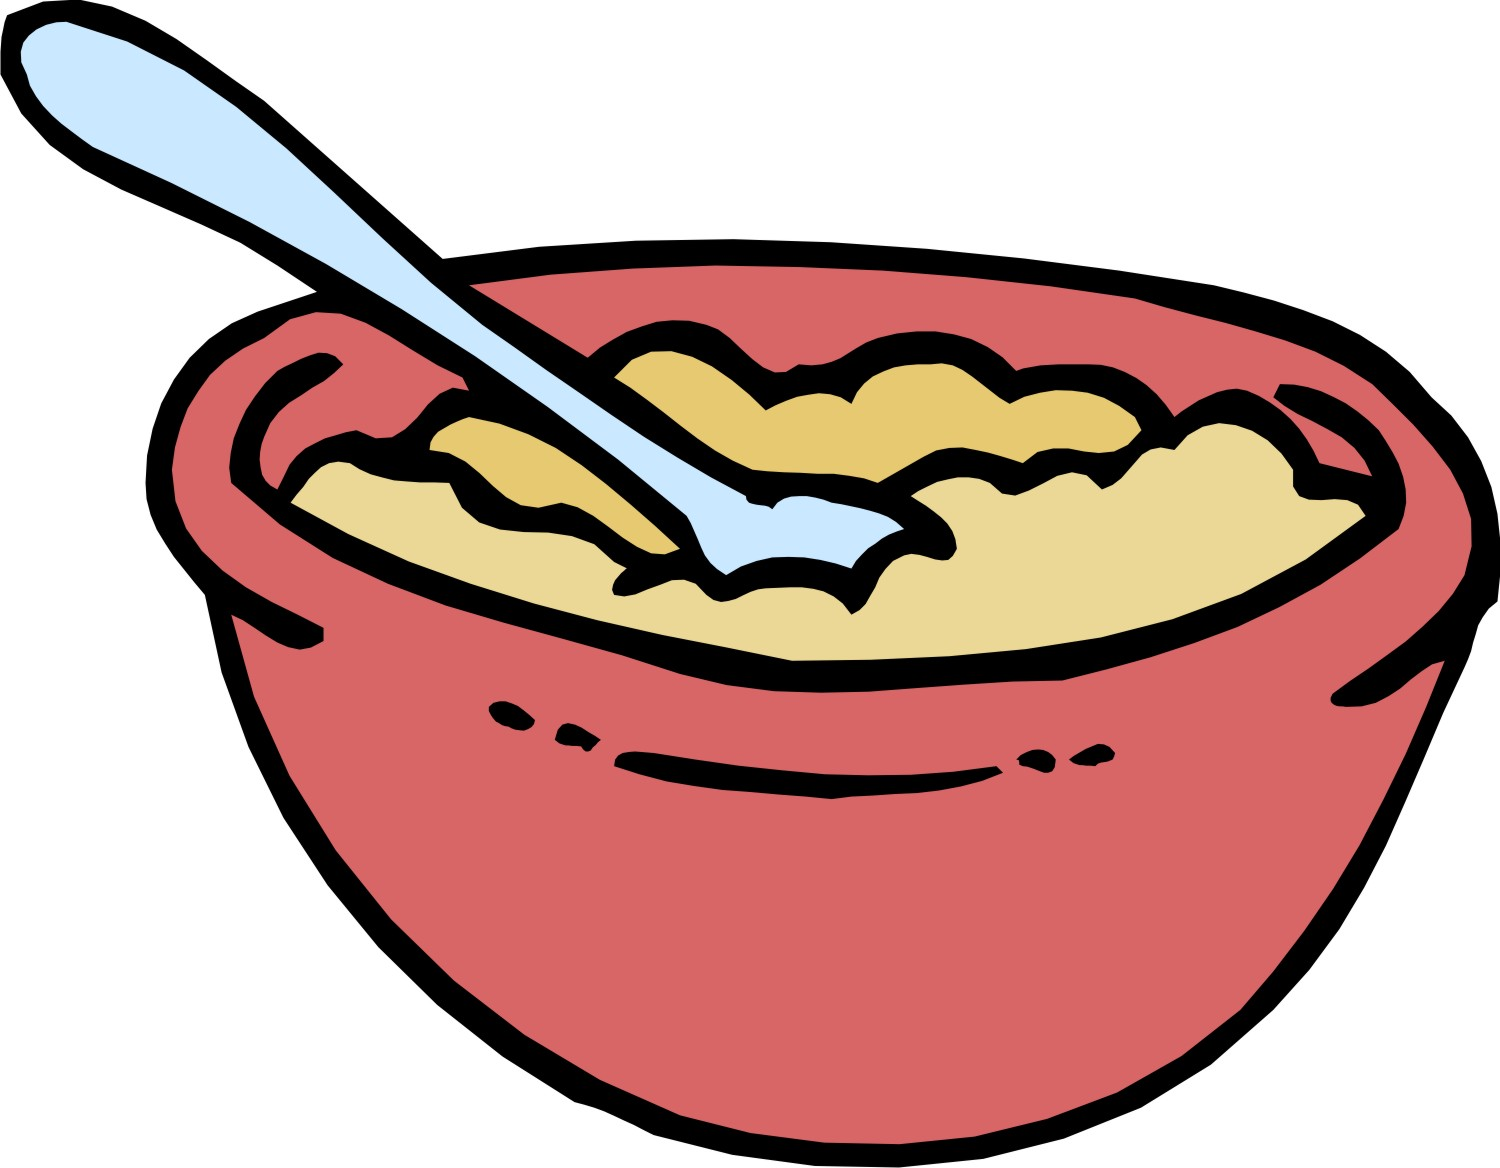 hight resolution of images for cereal bowl clip art